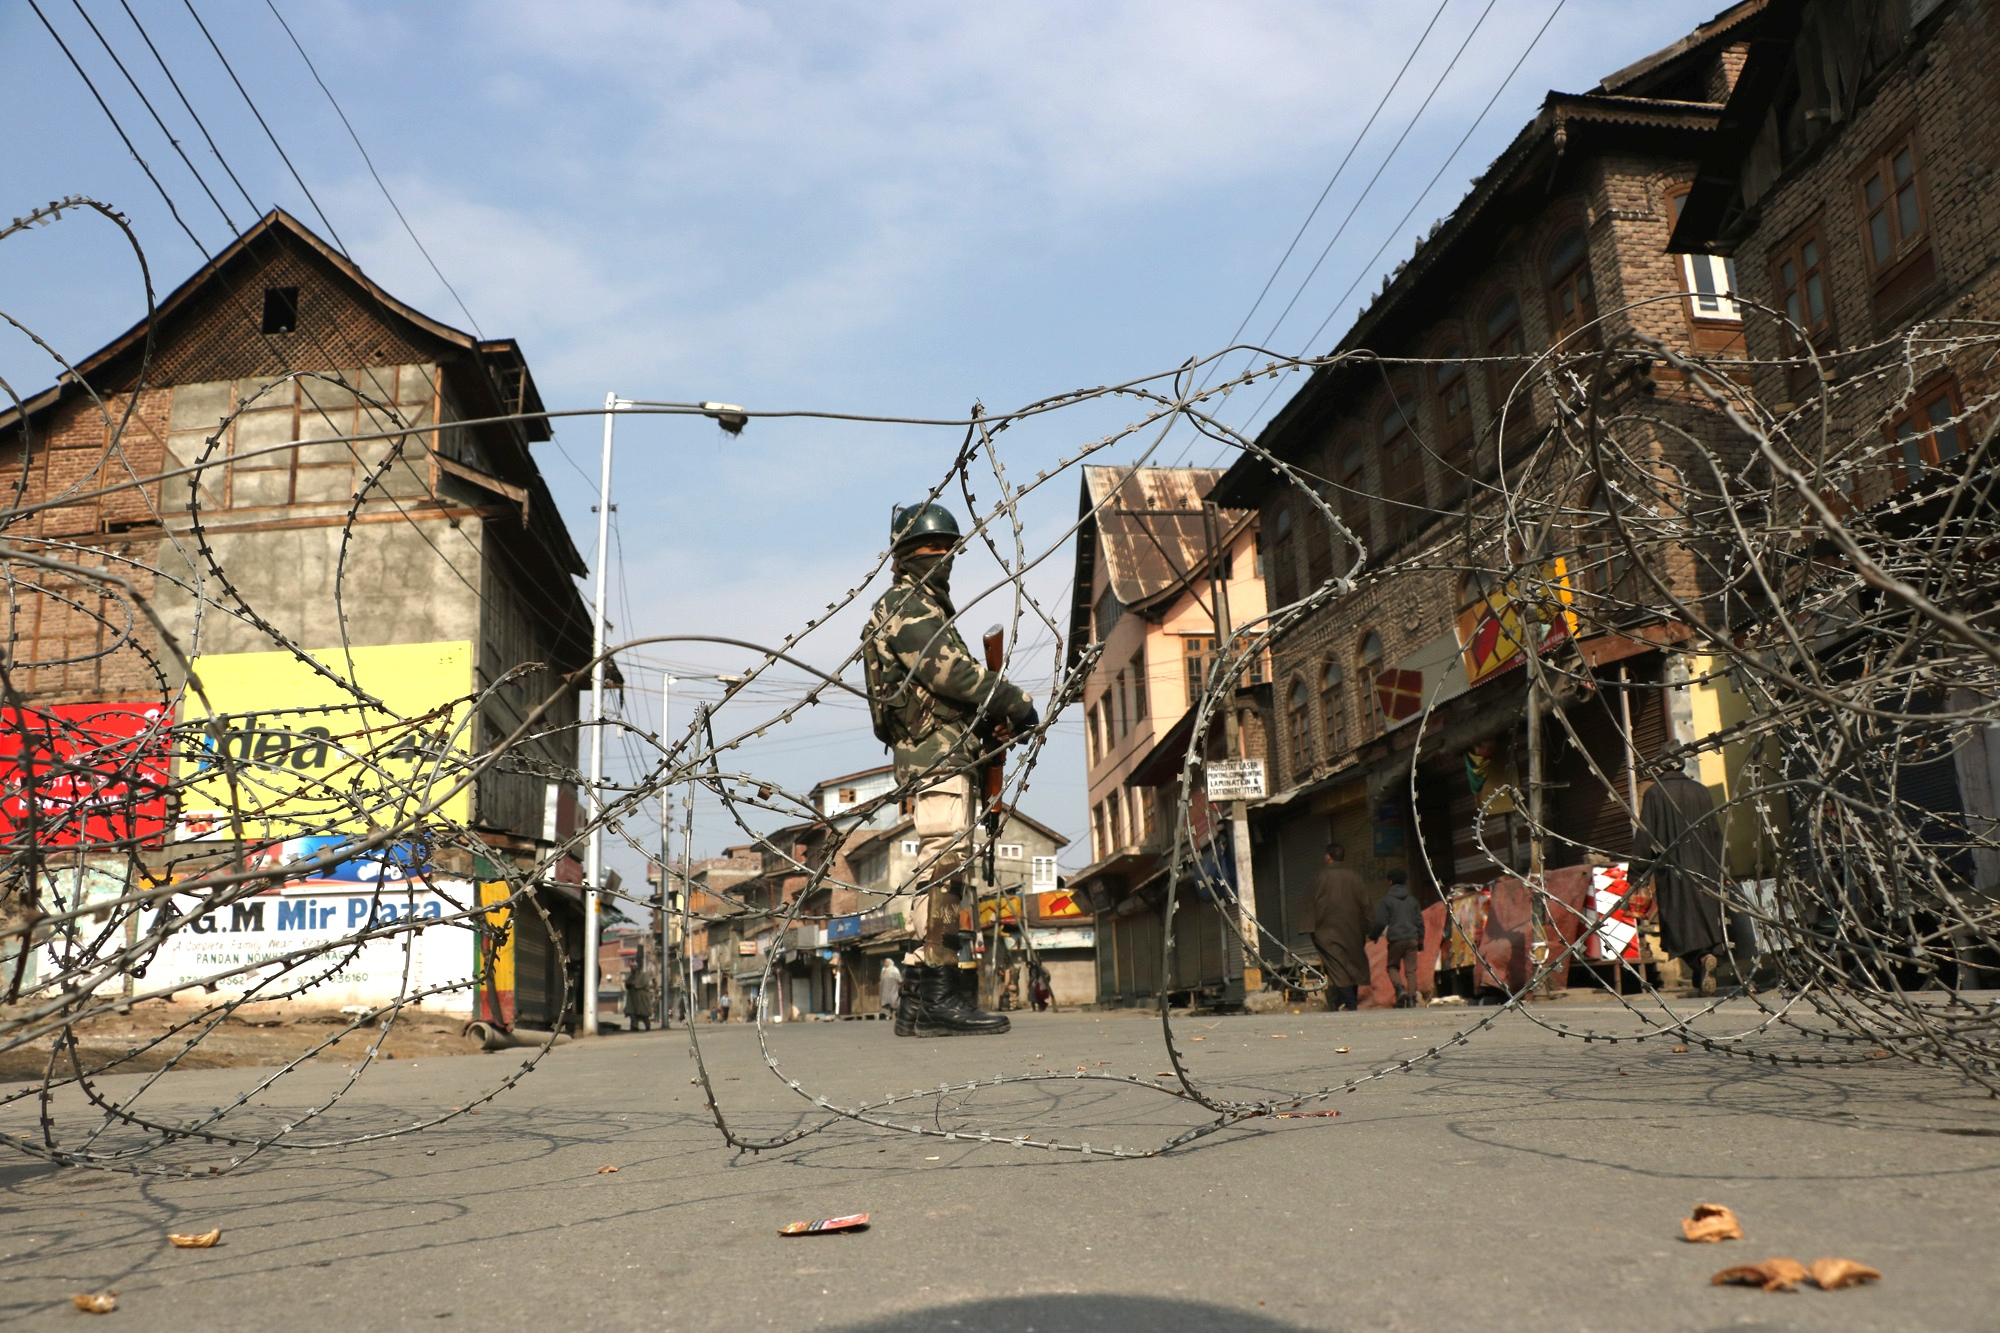 Mehbooba Mufti govt thwarts separatists' march to Shopian, DM issues prohibitory orders